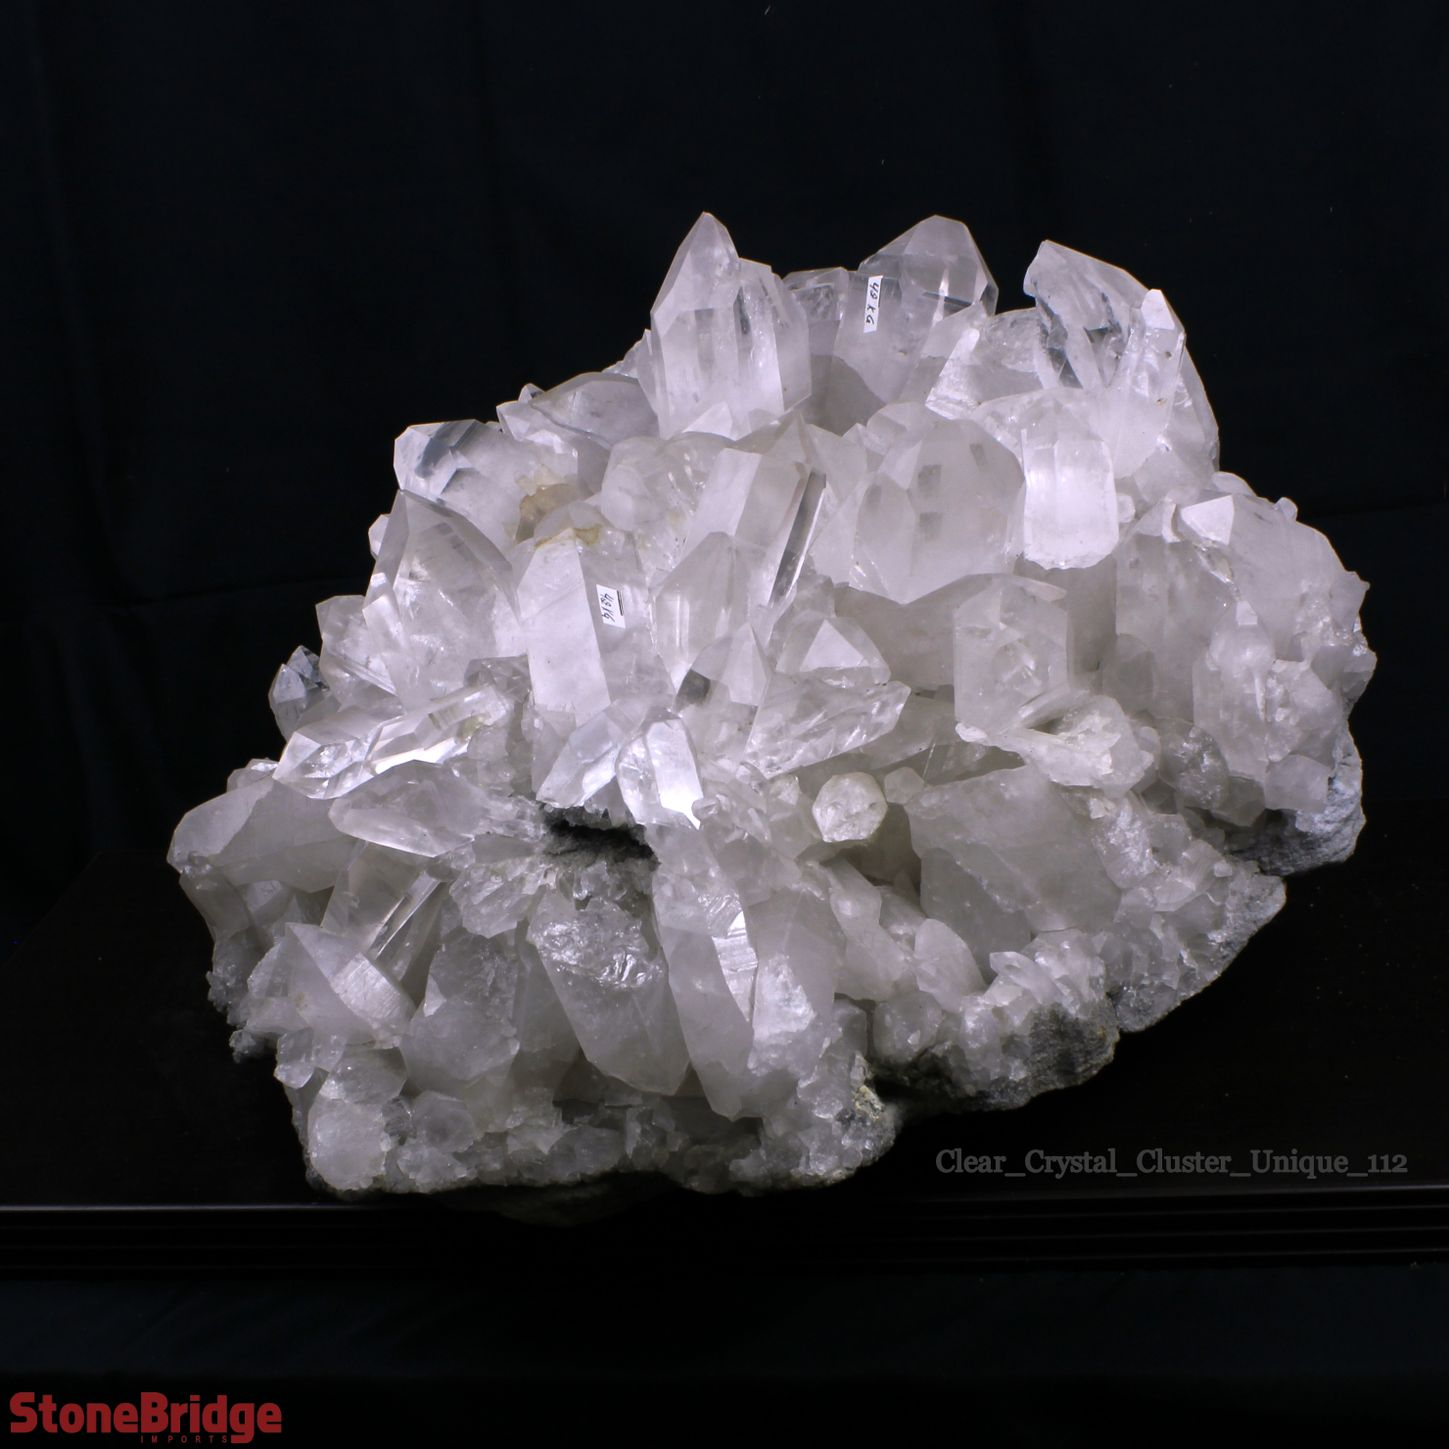 CLCRU112_Clear_Crystal_Cluster_Unique_1125.jpg